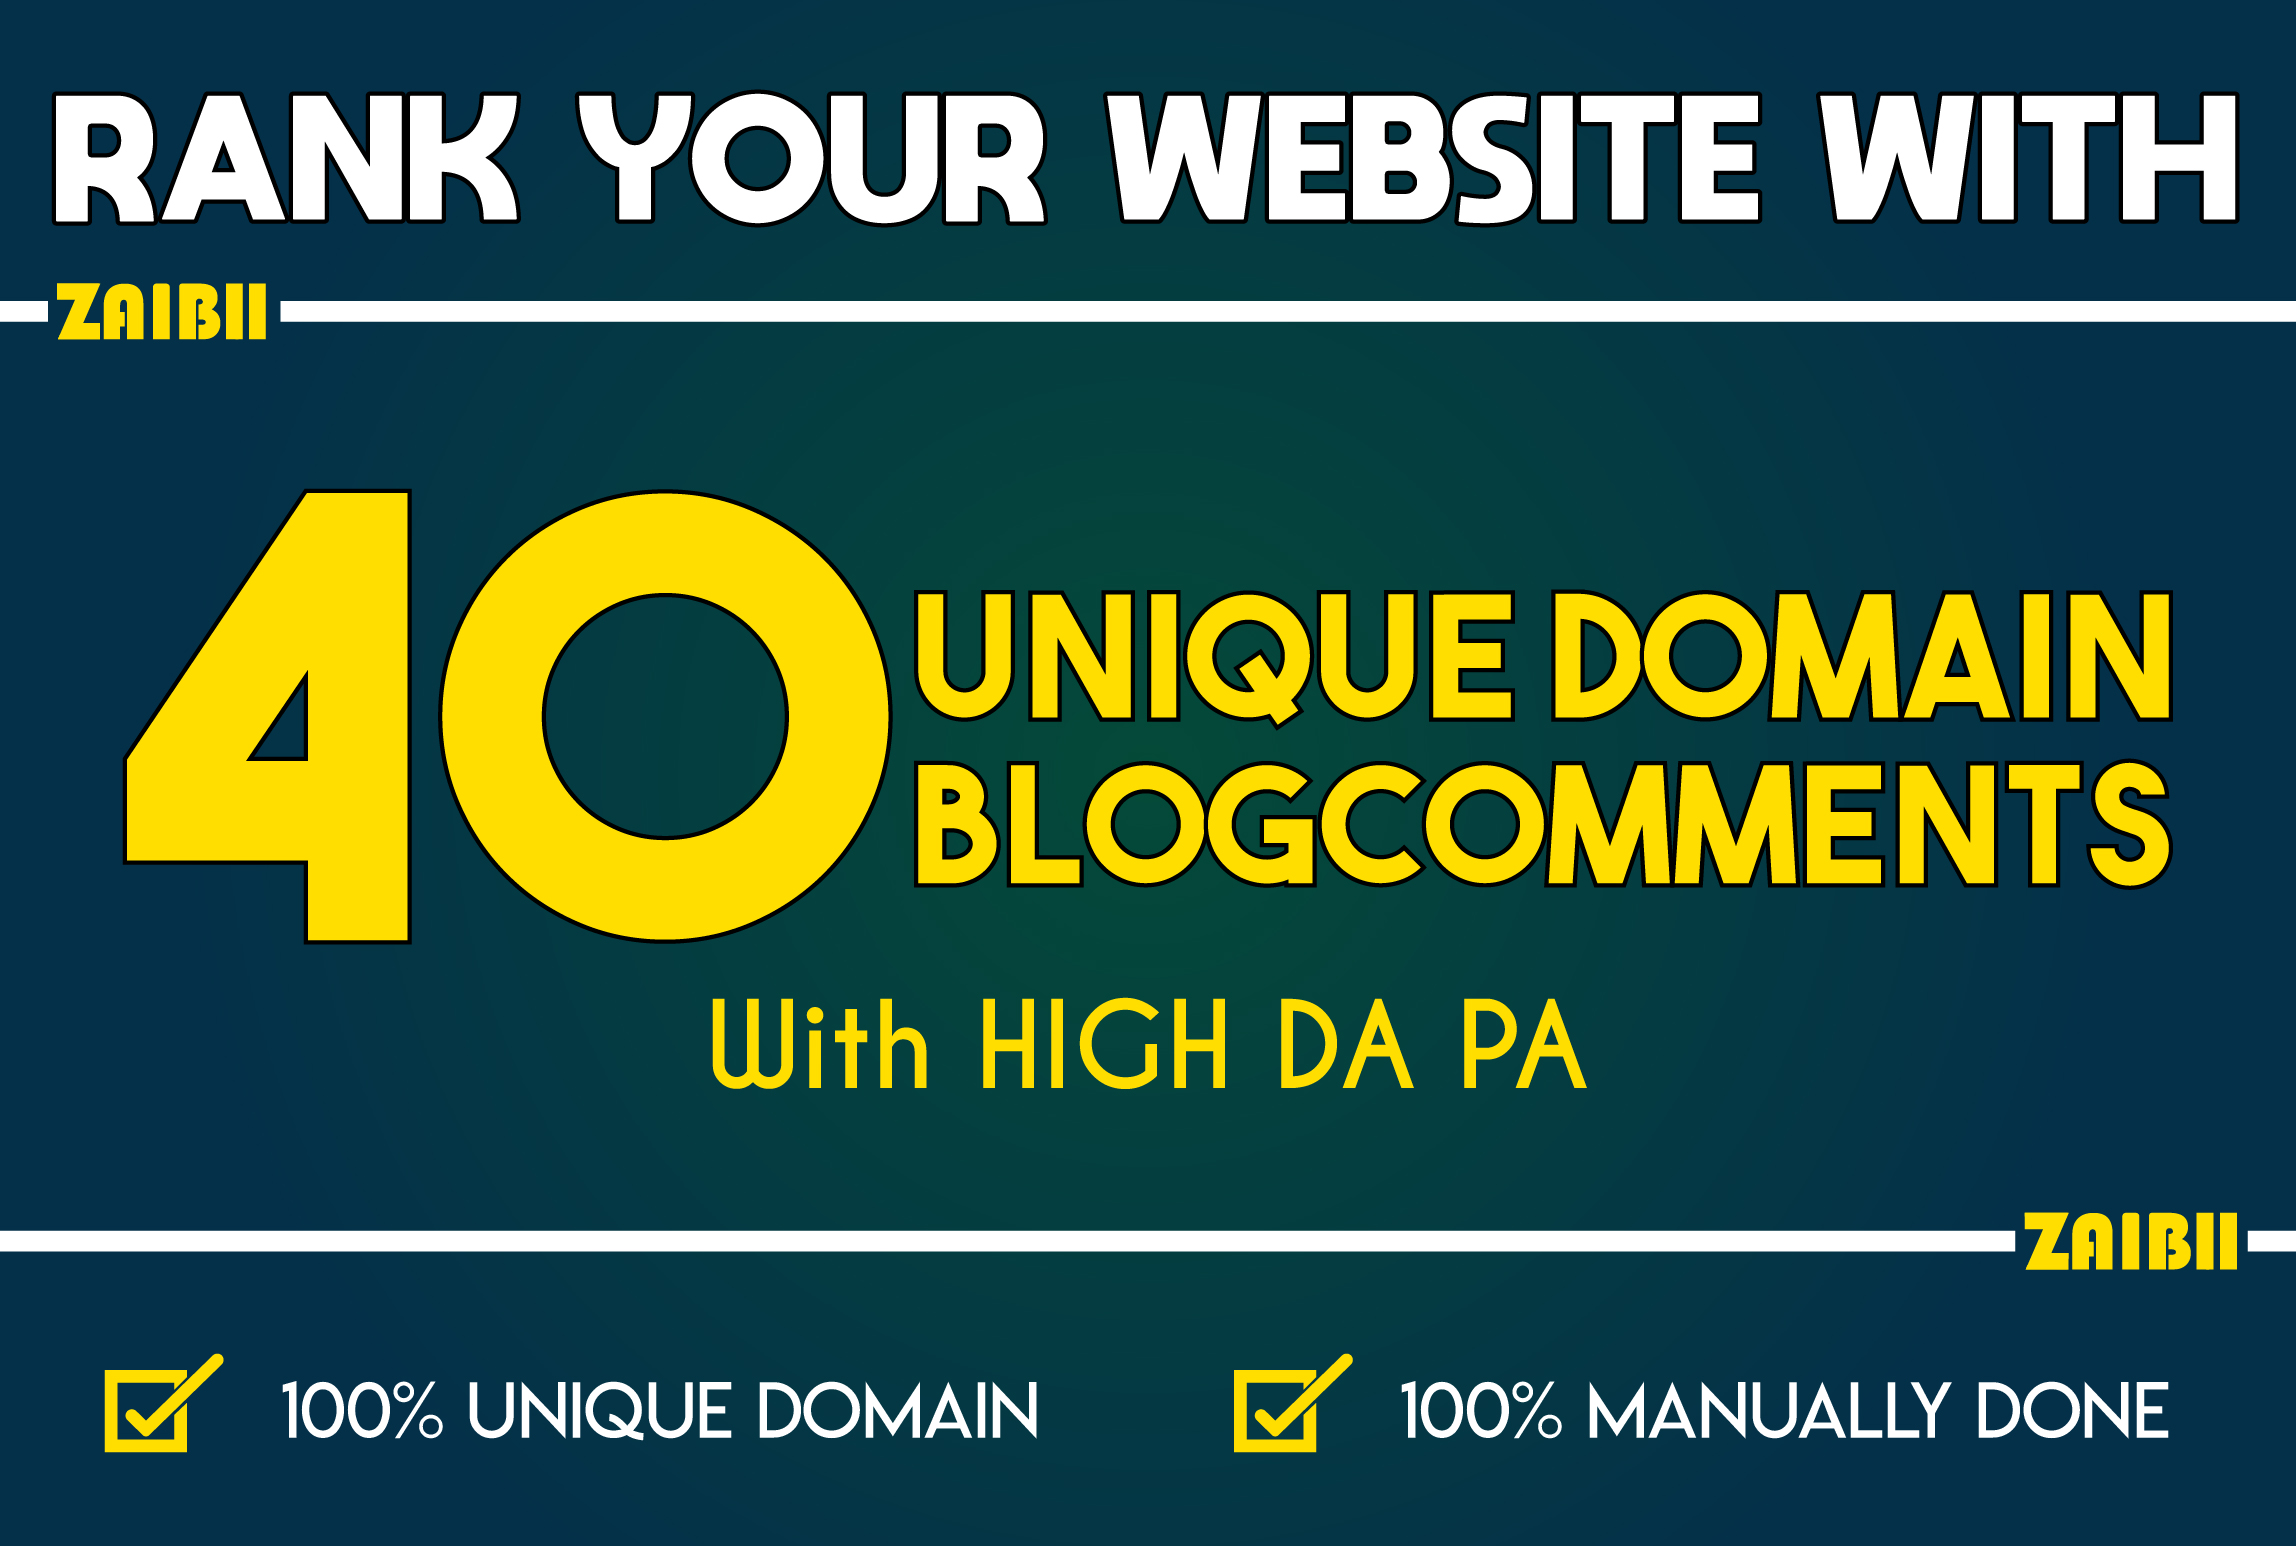 Do 40 Unique Domain Blogcomments with High DA PA